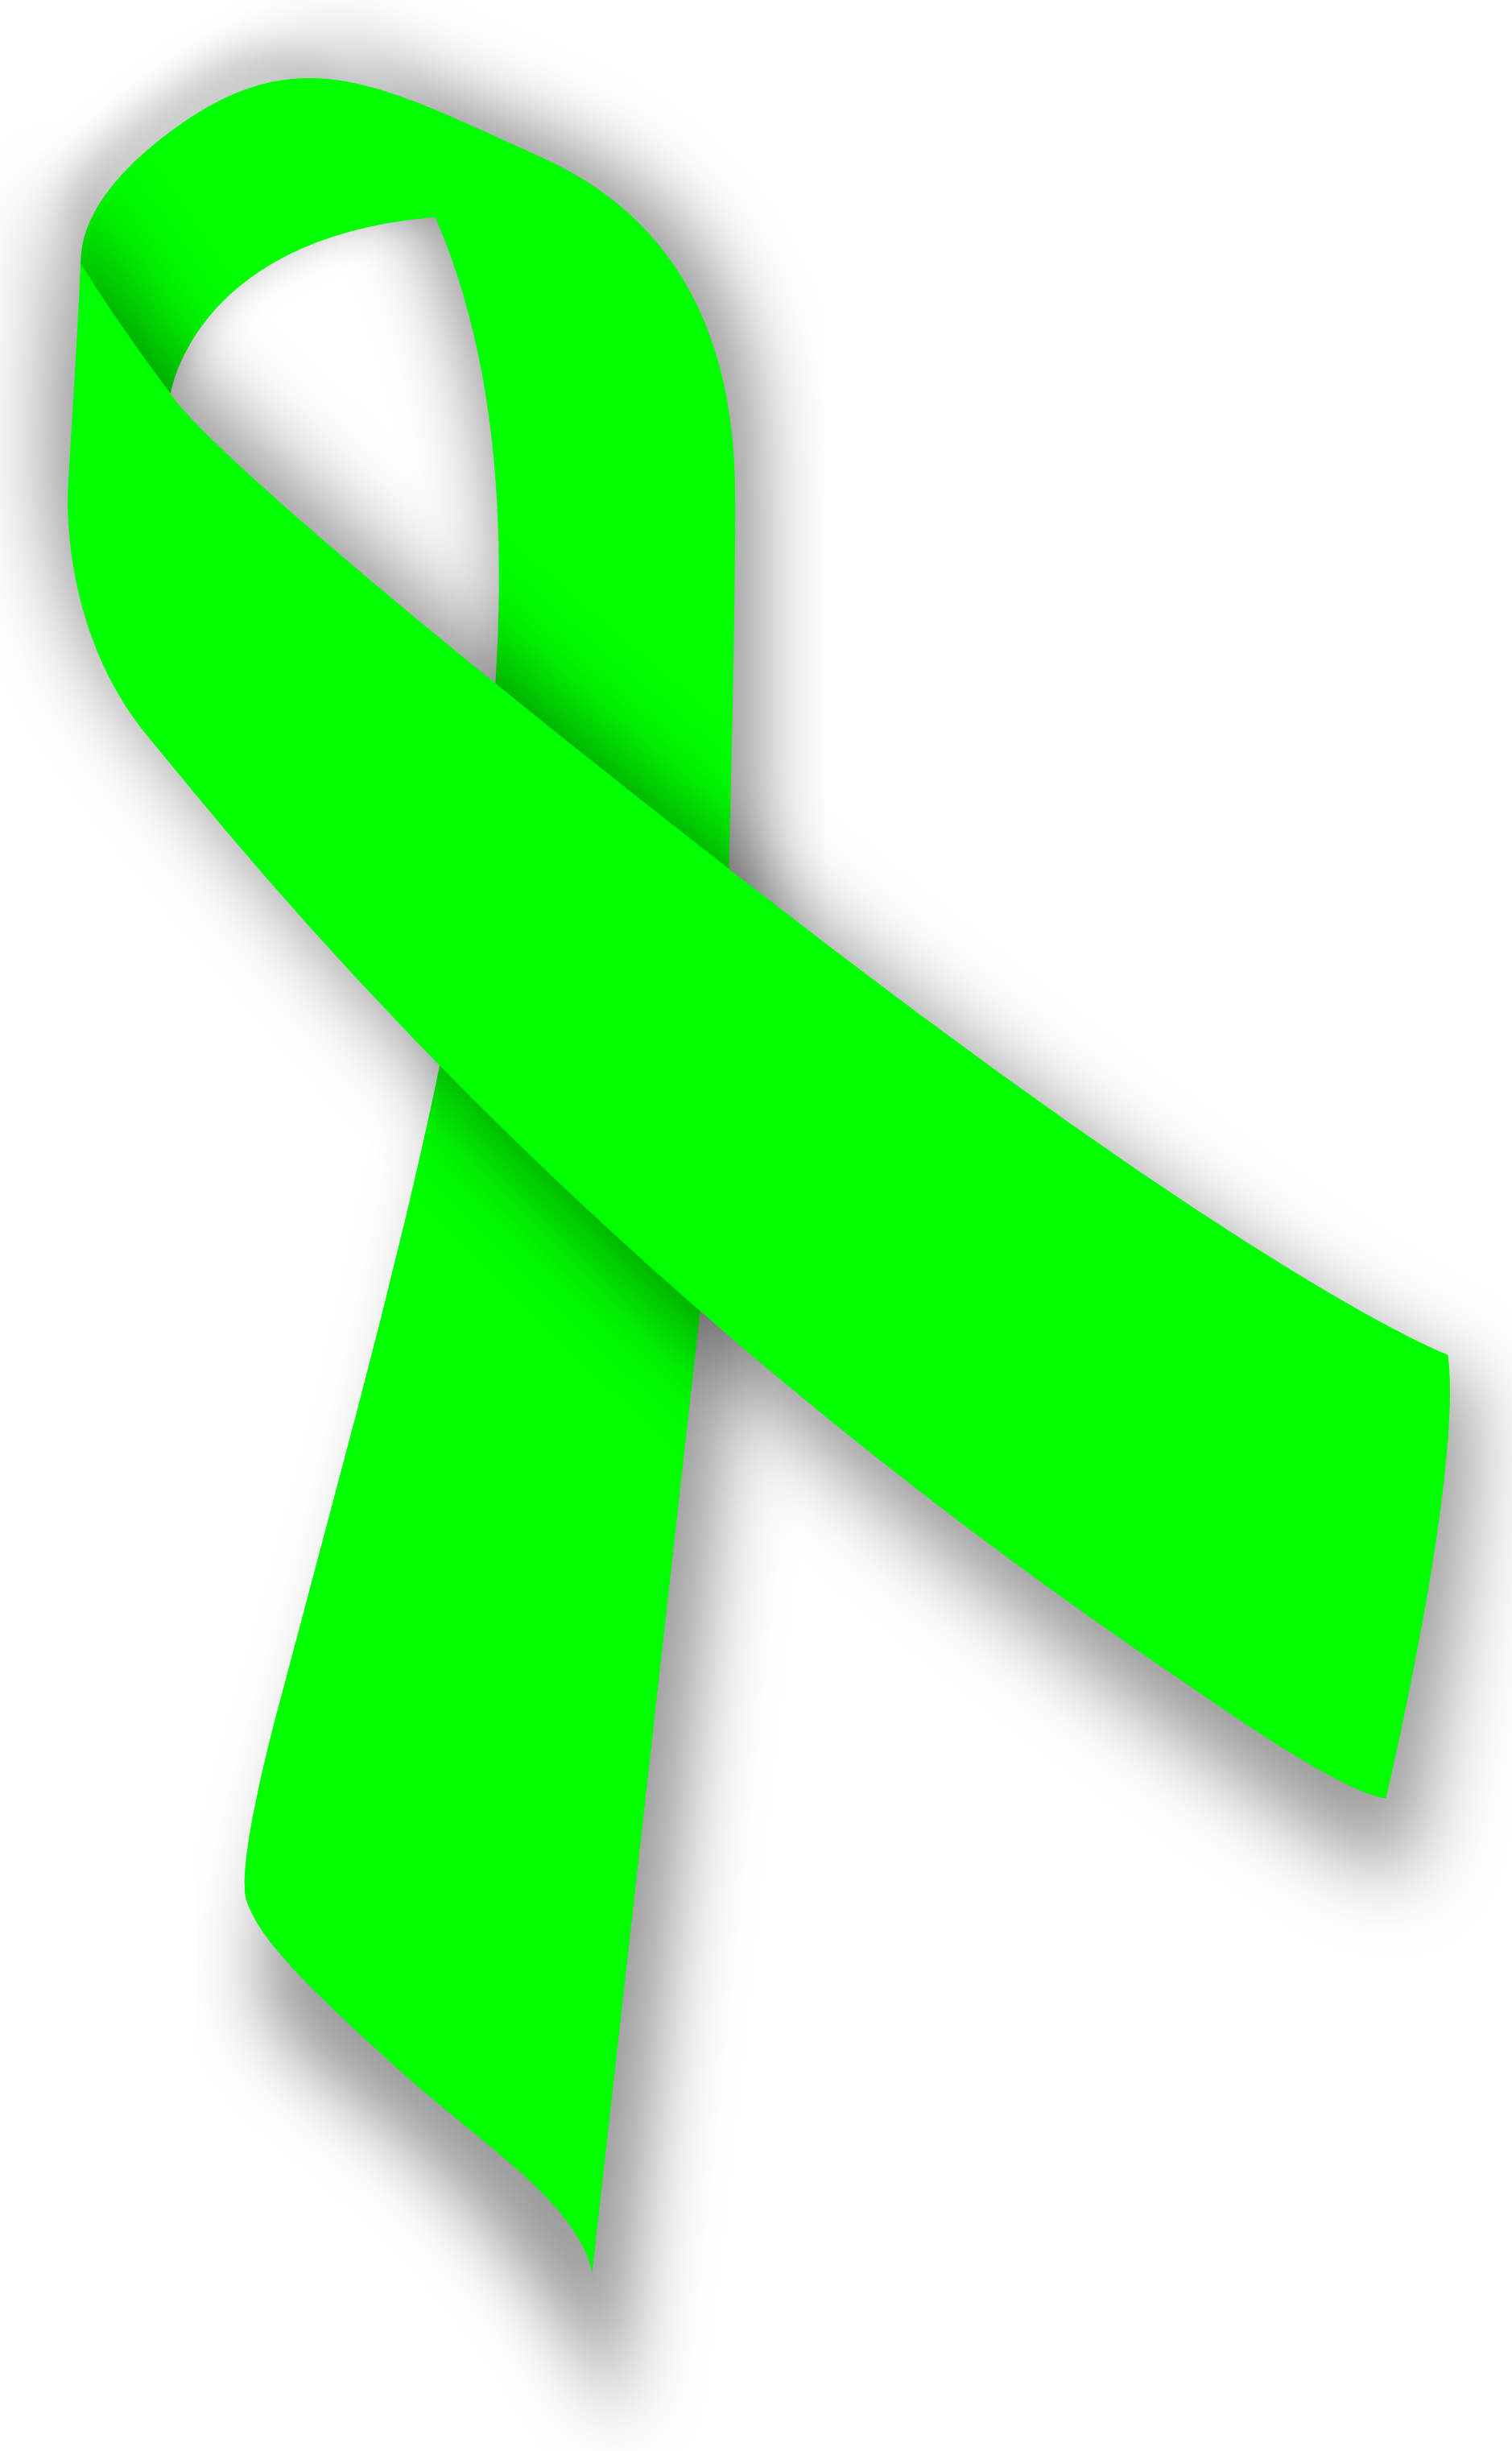 Lime Green Cancer Ribbon - ClipArt Best